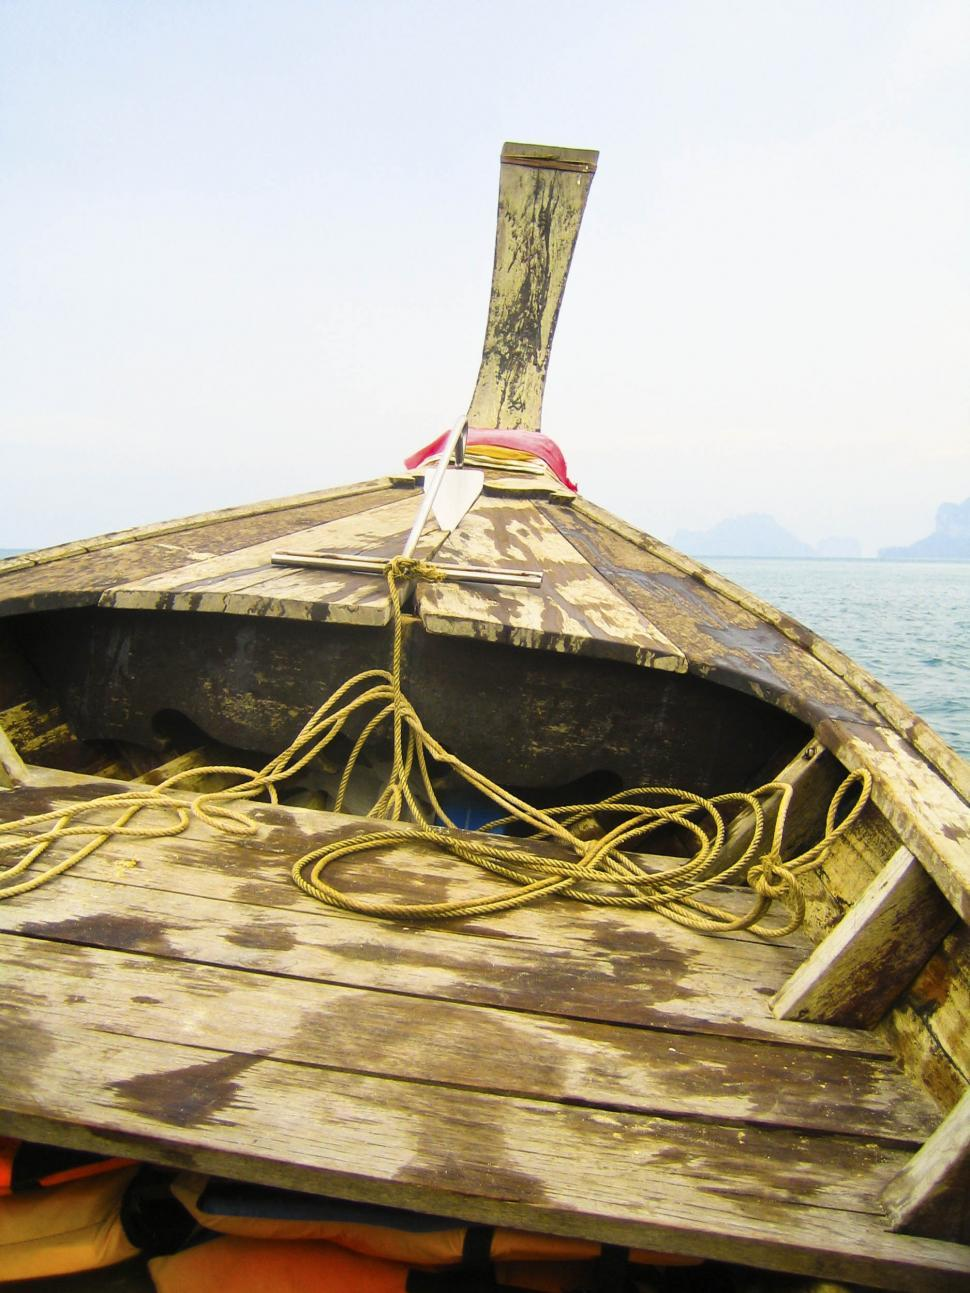 Download Free Stock HD Photo of On a wooden boat Online